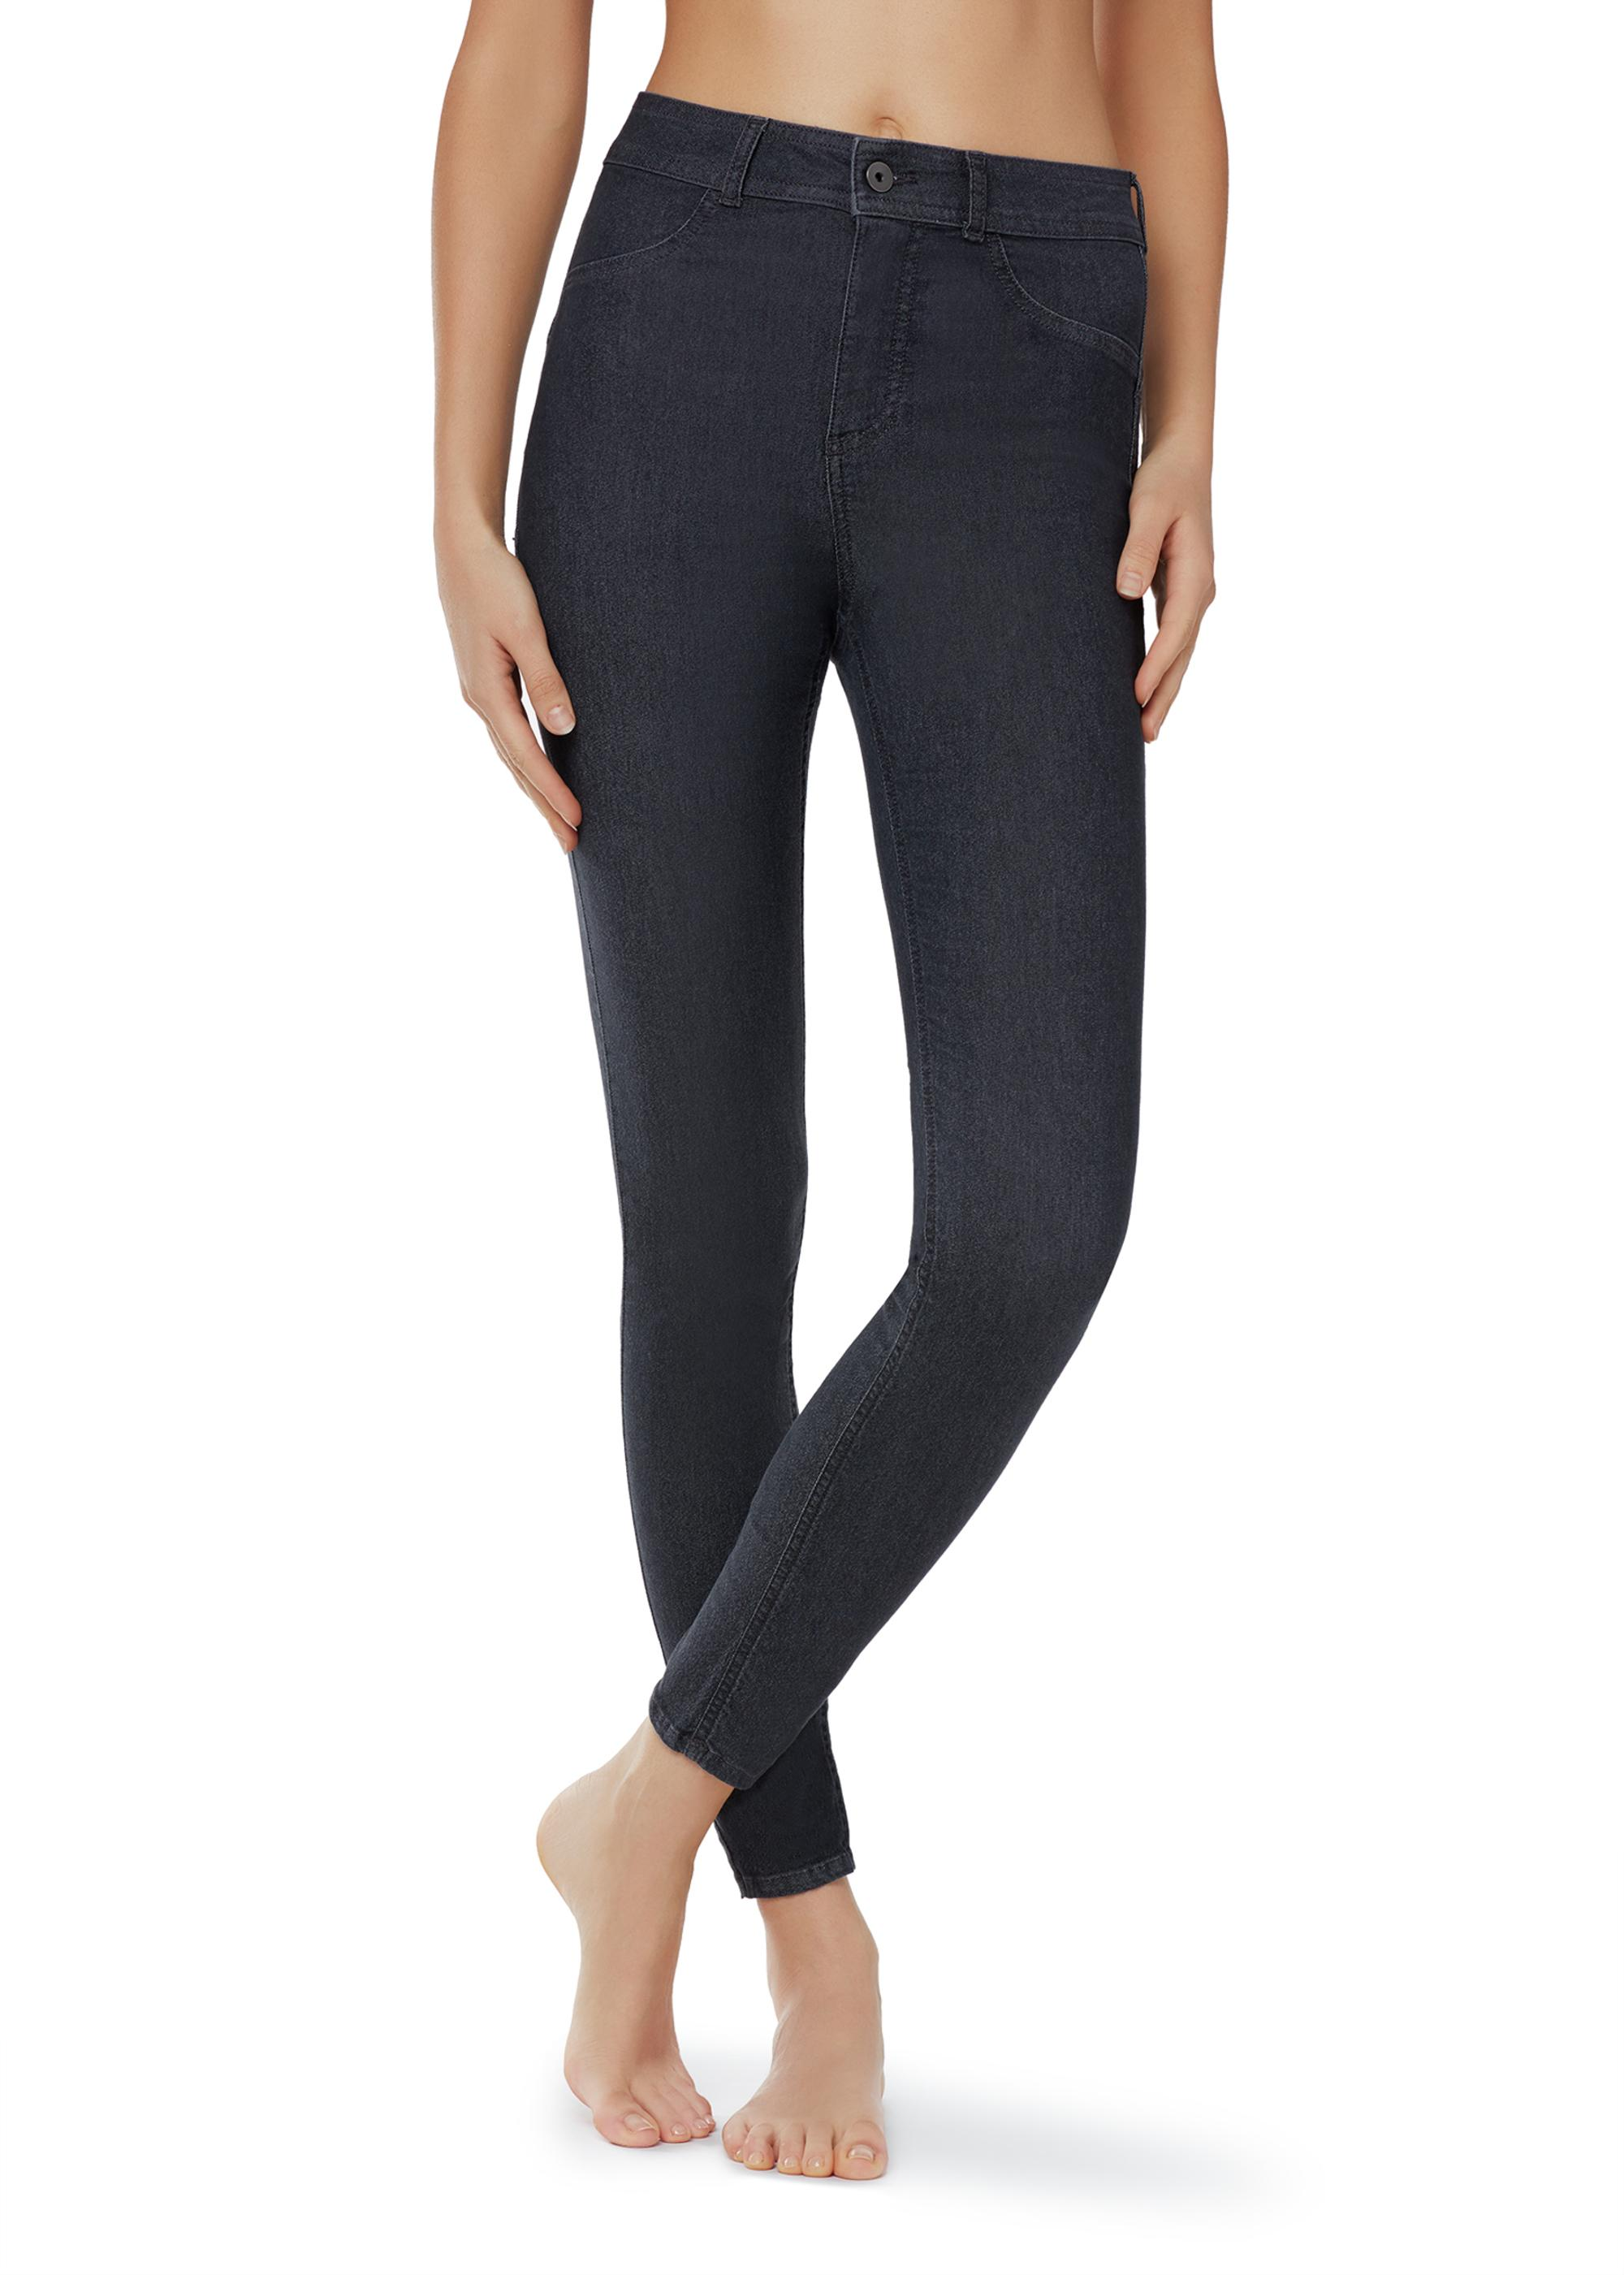 bed544217c0 Push-Up Jeans - Calzedonia